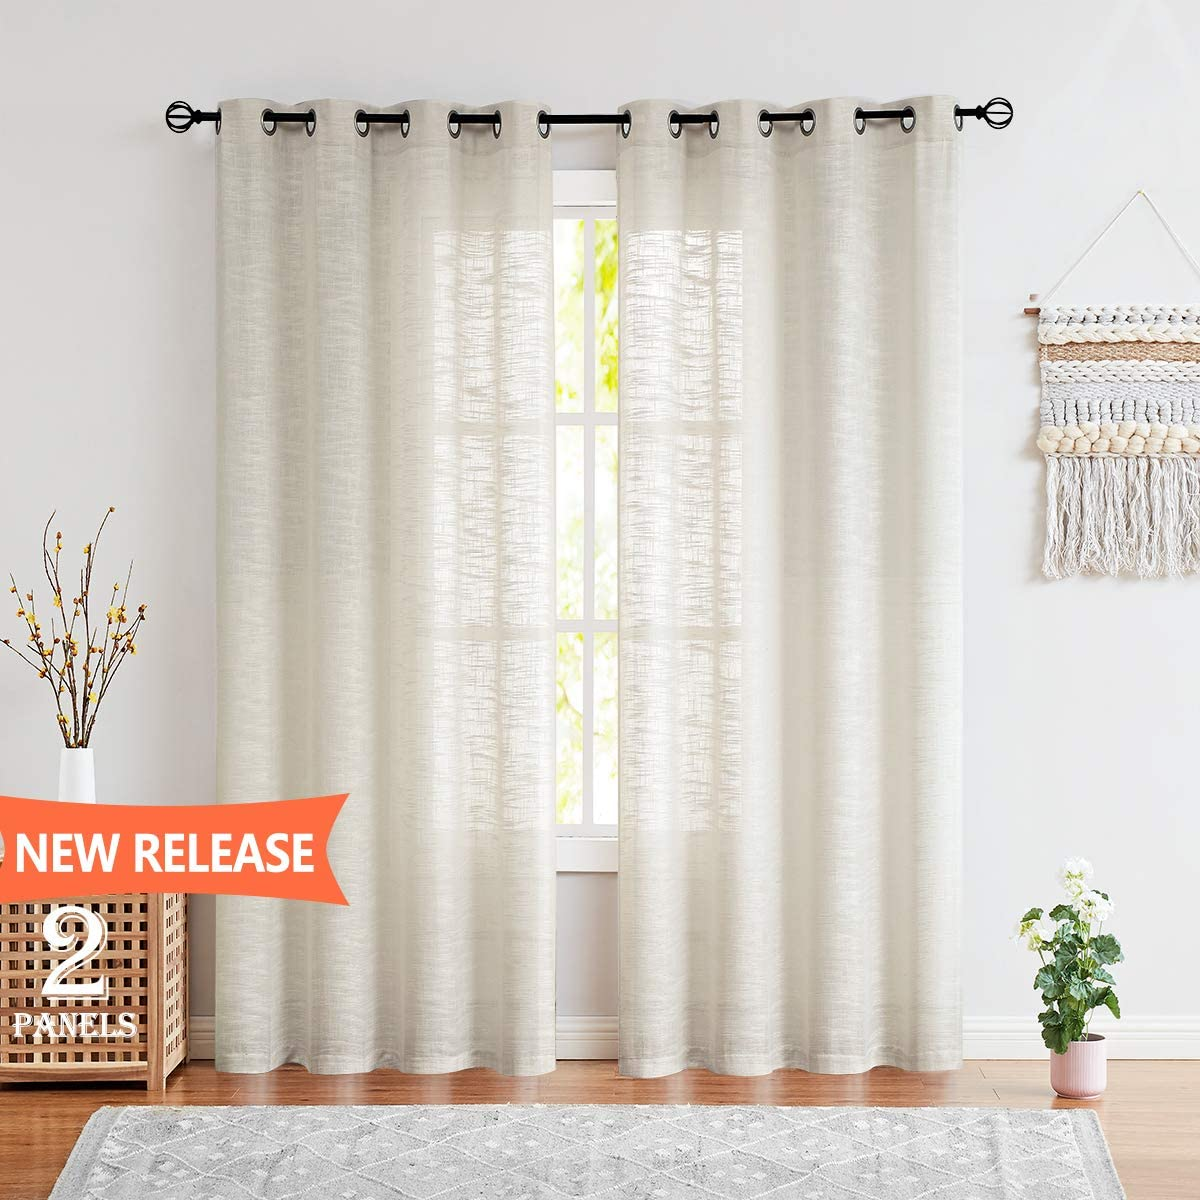 Fmfunctex Sheer Linen Curtains for Living Room Natural 108-inches Extra Long Rich Linen Textured Window Drapes for Bedroom Windows 52 w 2 Panels Grommet Top